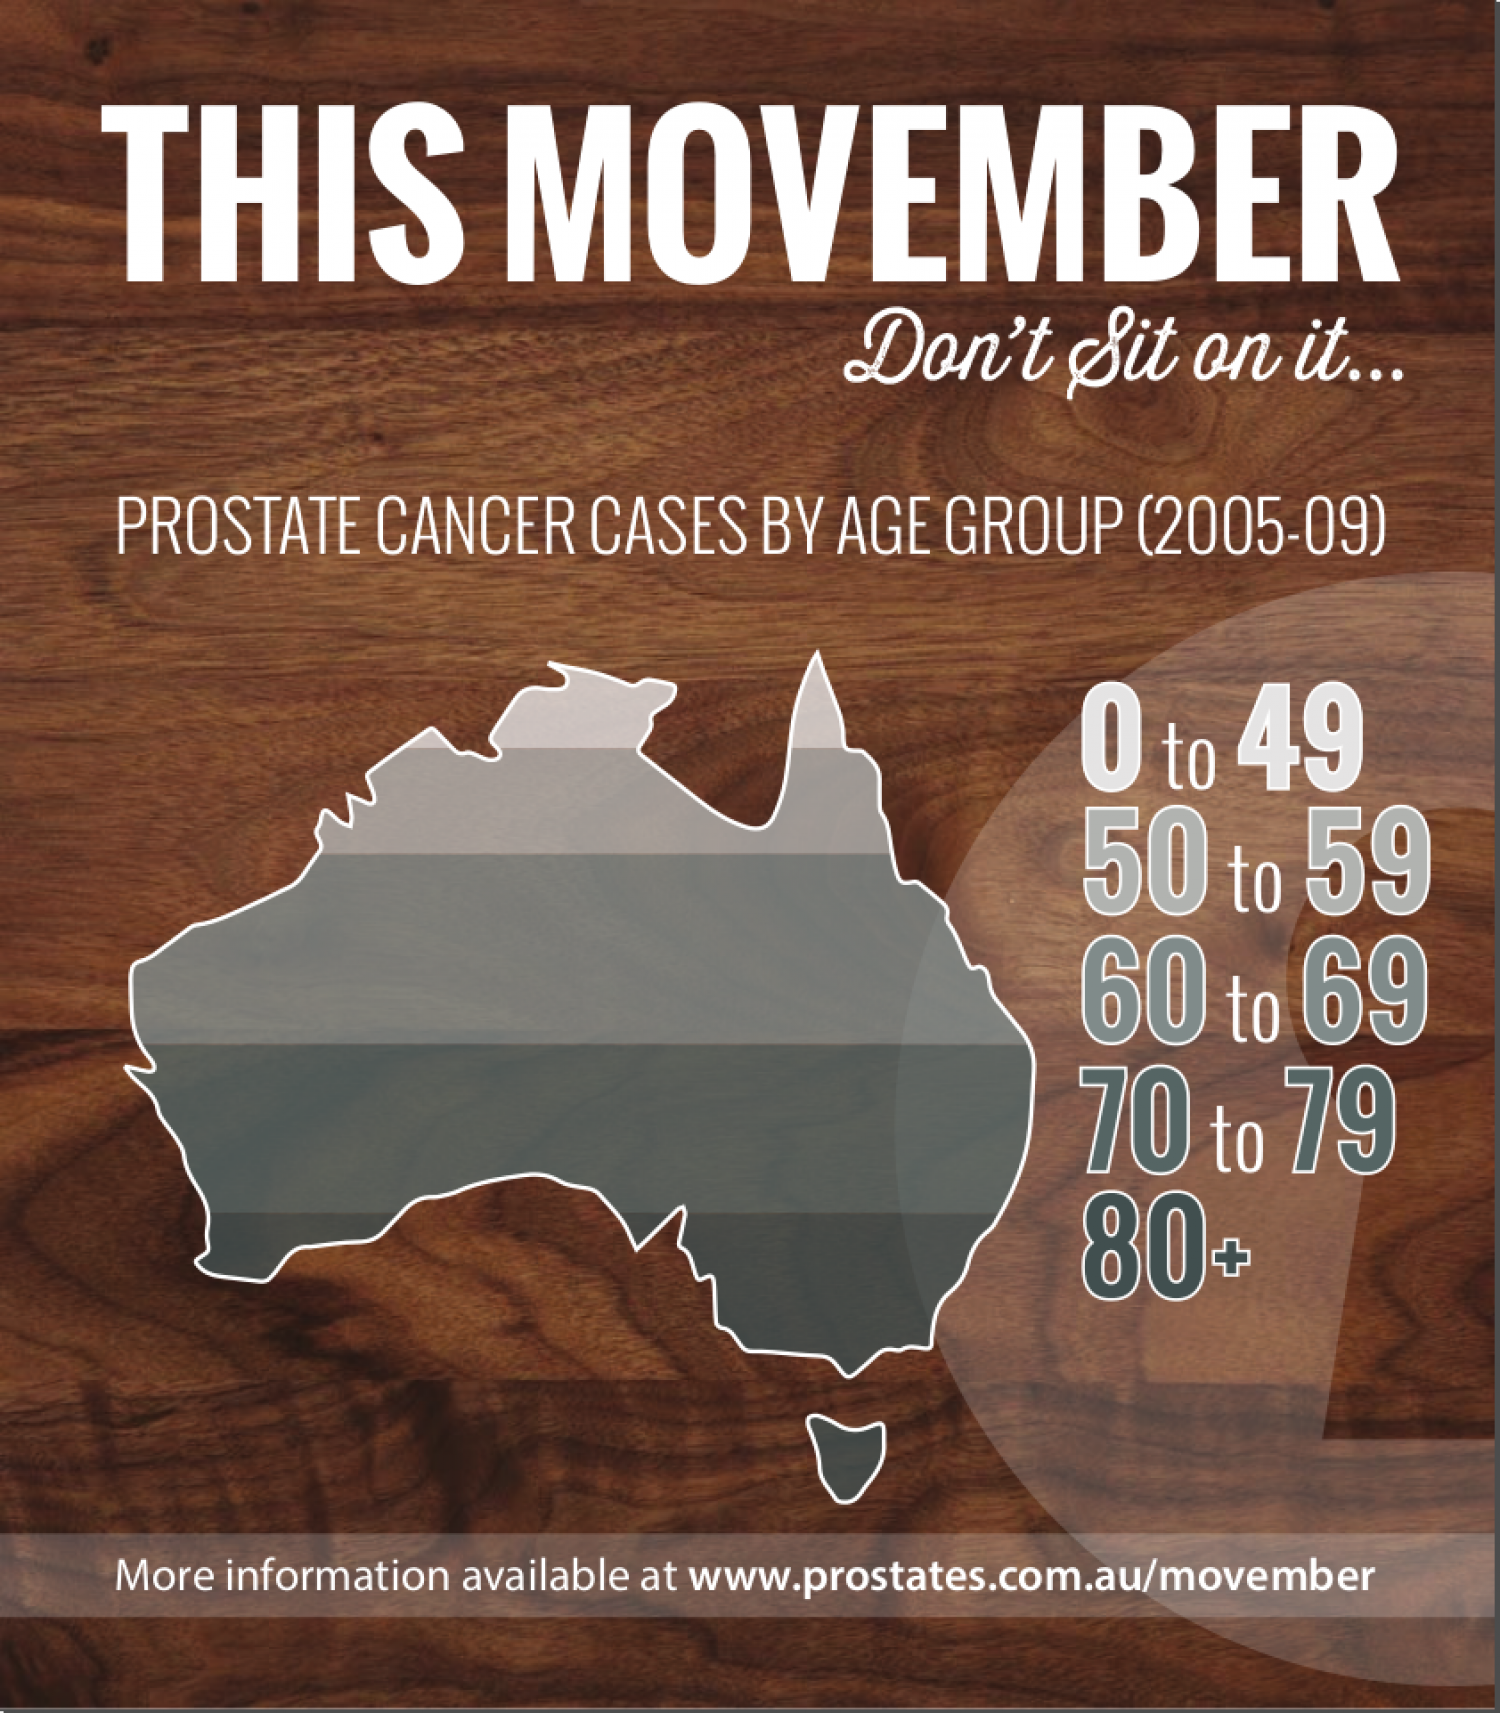 Prostate Cancer by Age Group (Australia) Infographic